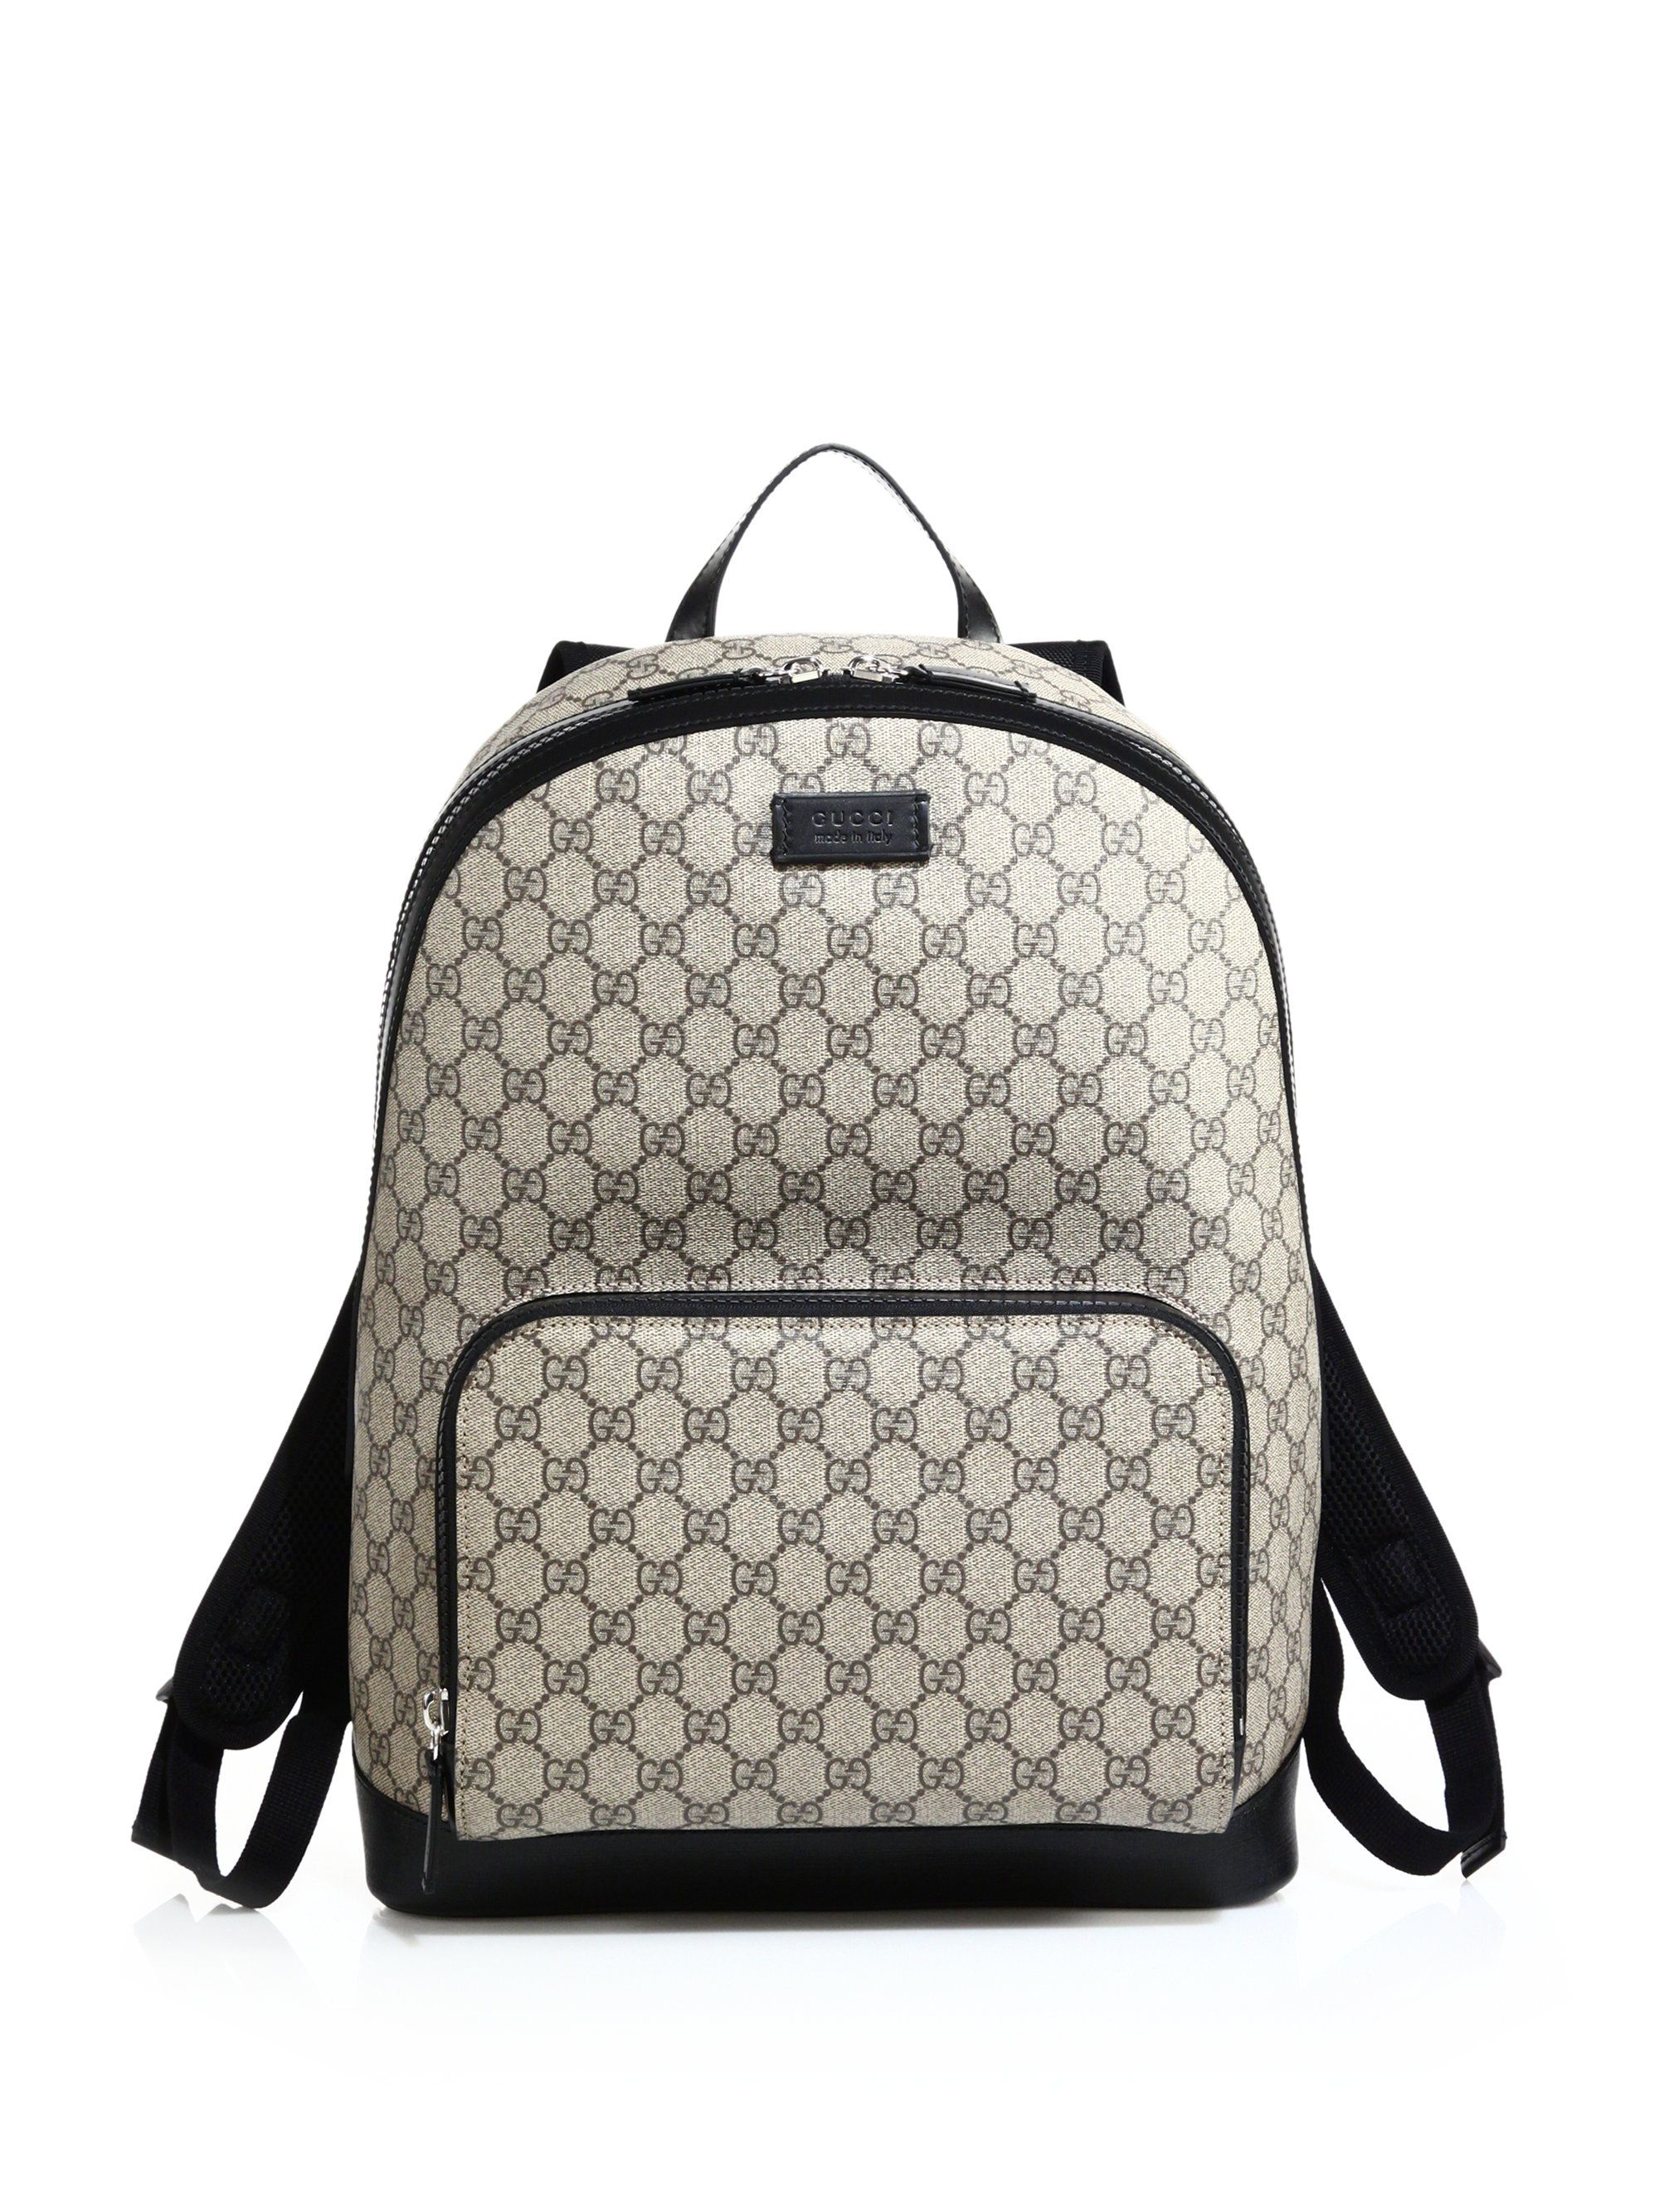 3744e01e Men's GG Supreme Canvas Backpack | Gucci Bag Wear | Mens leather ...